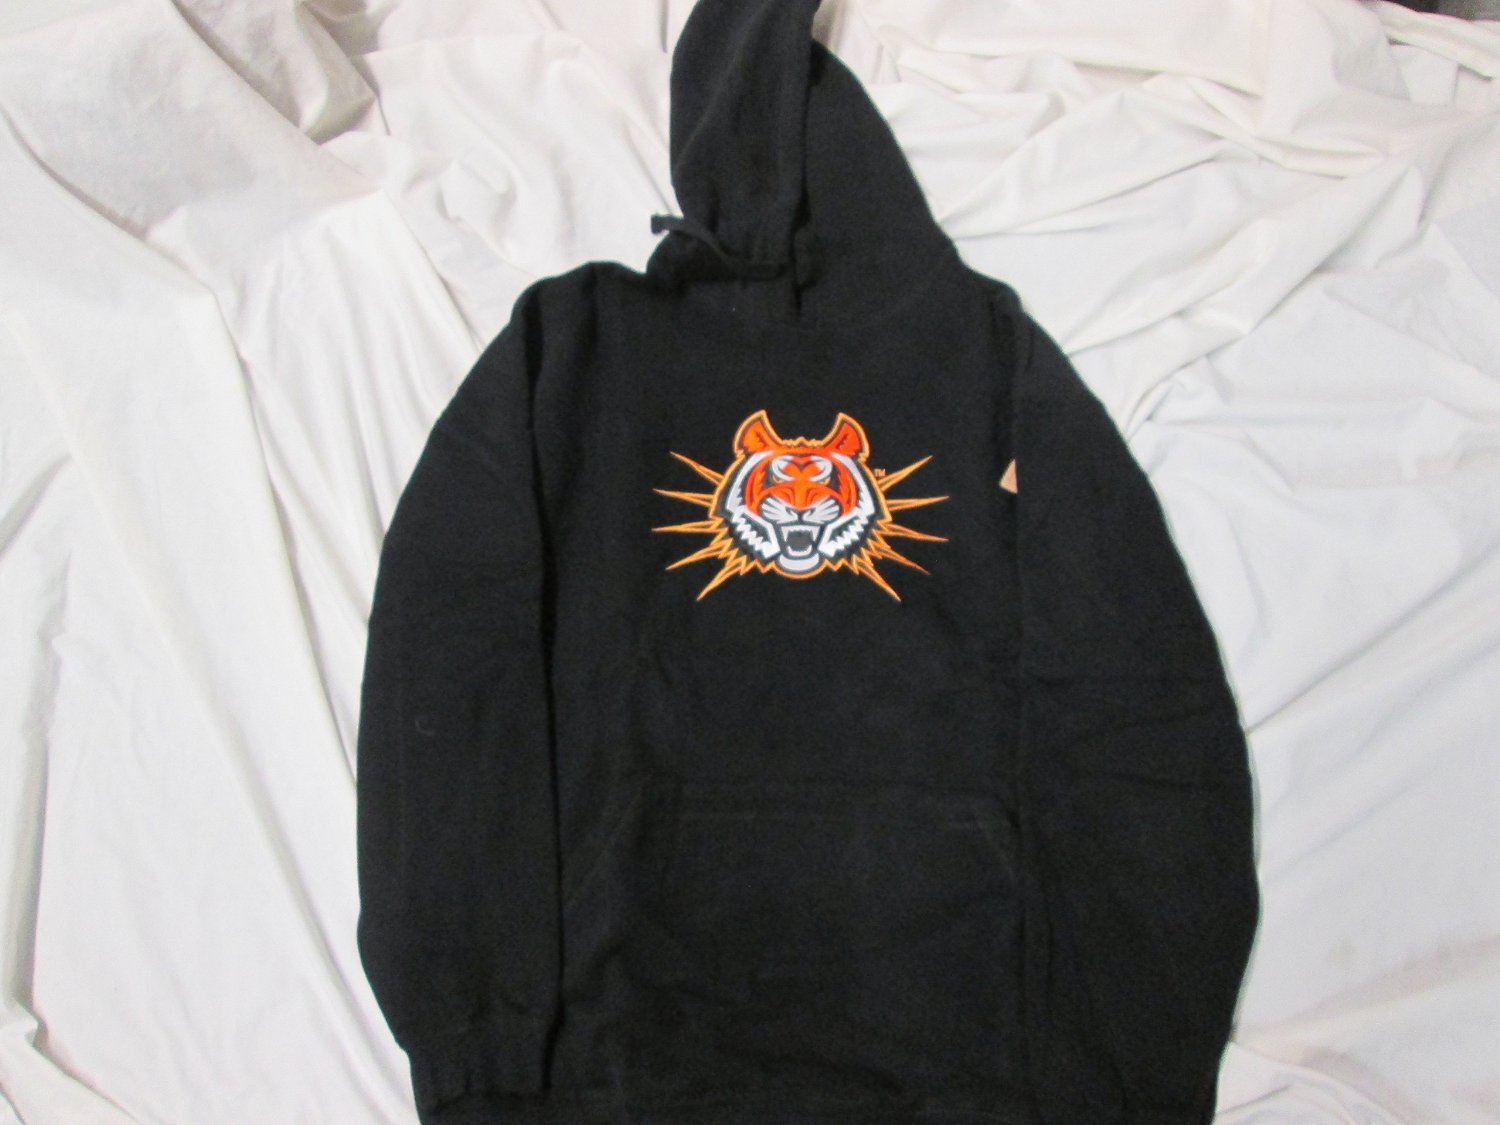 dac368b8 Cheap Bengals Sweatshirt, find Bengals Sweatshirt deals on line at ...